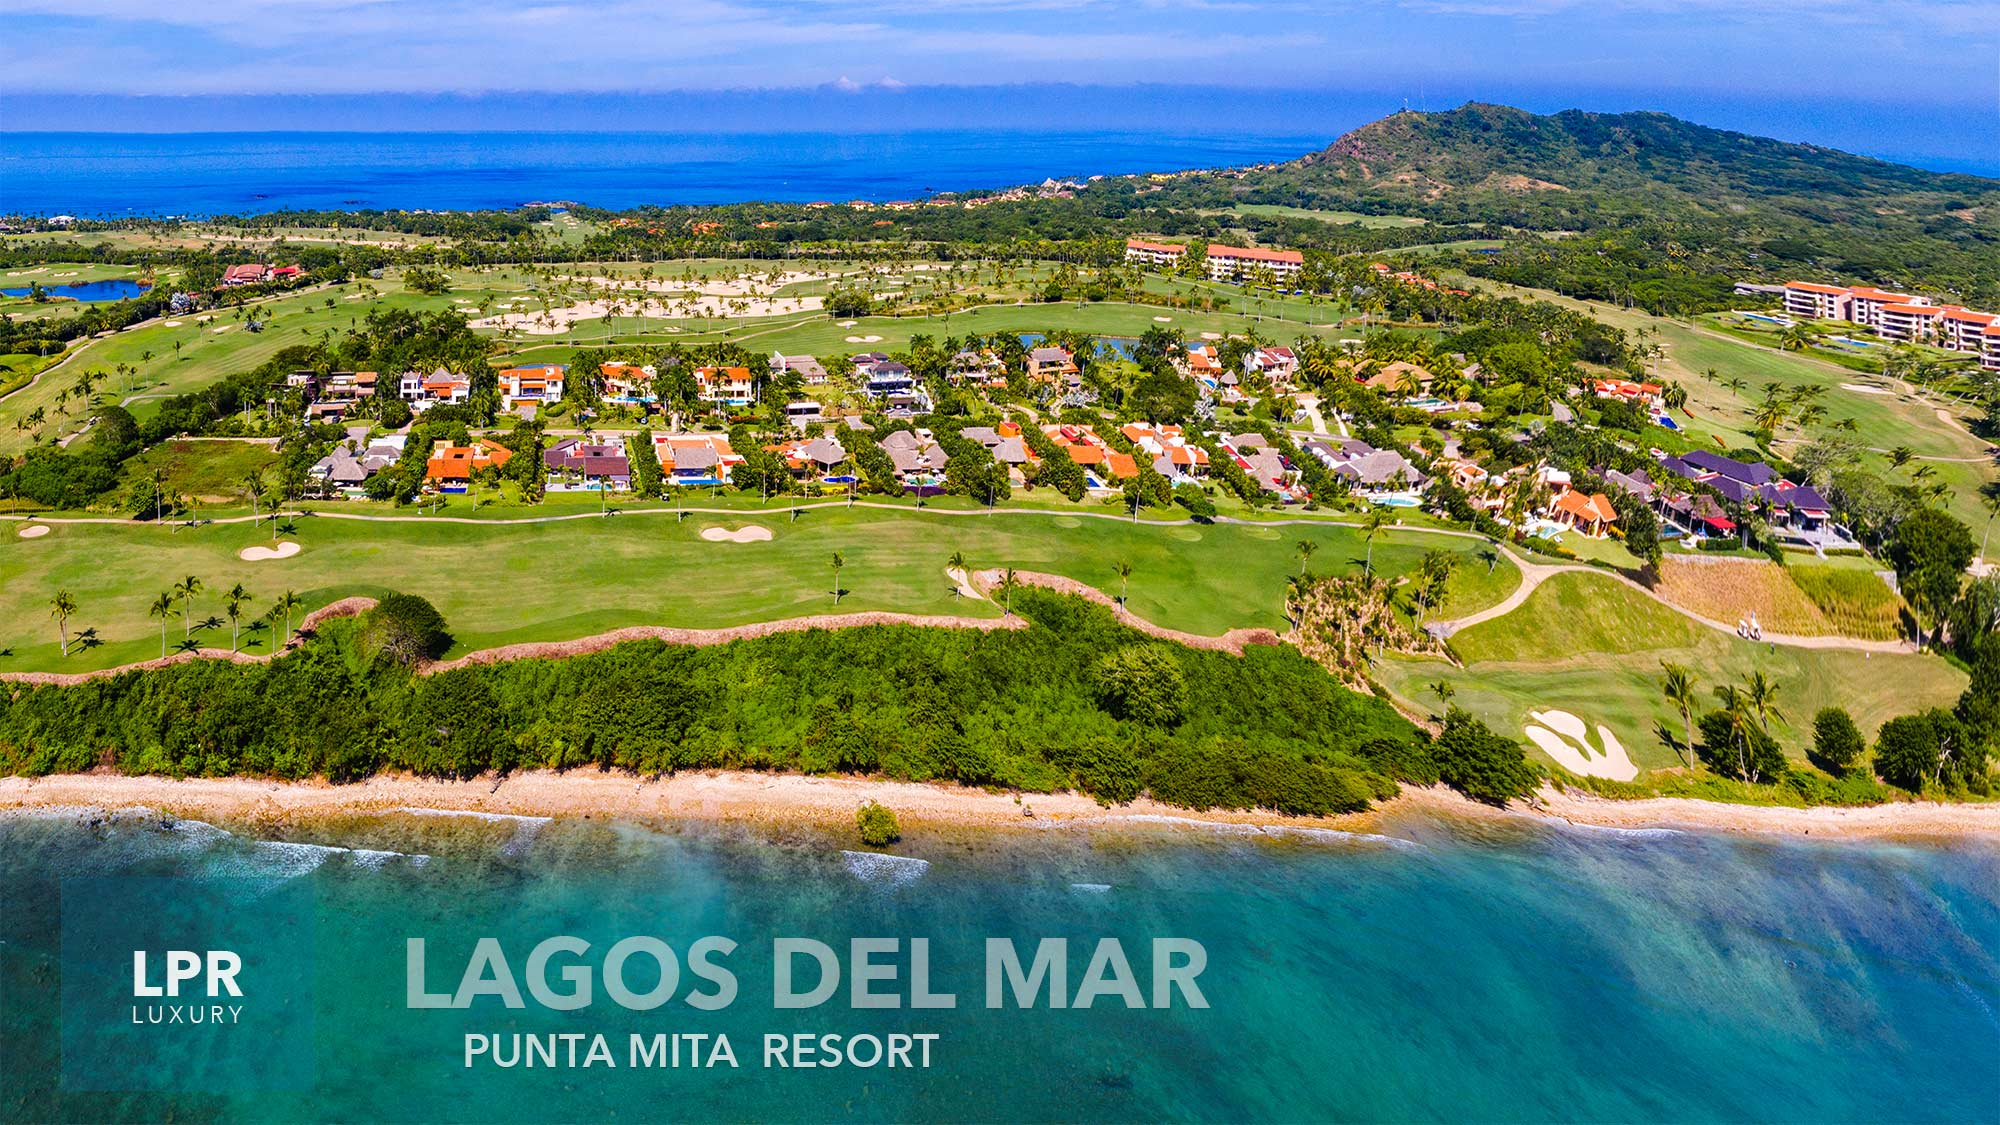 Lagos del Mar - Luxury resort oceanfront estate building lot - Four Seasons / St. Regis - luxury real estate - Riviera Nayarit, Mexico